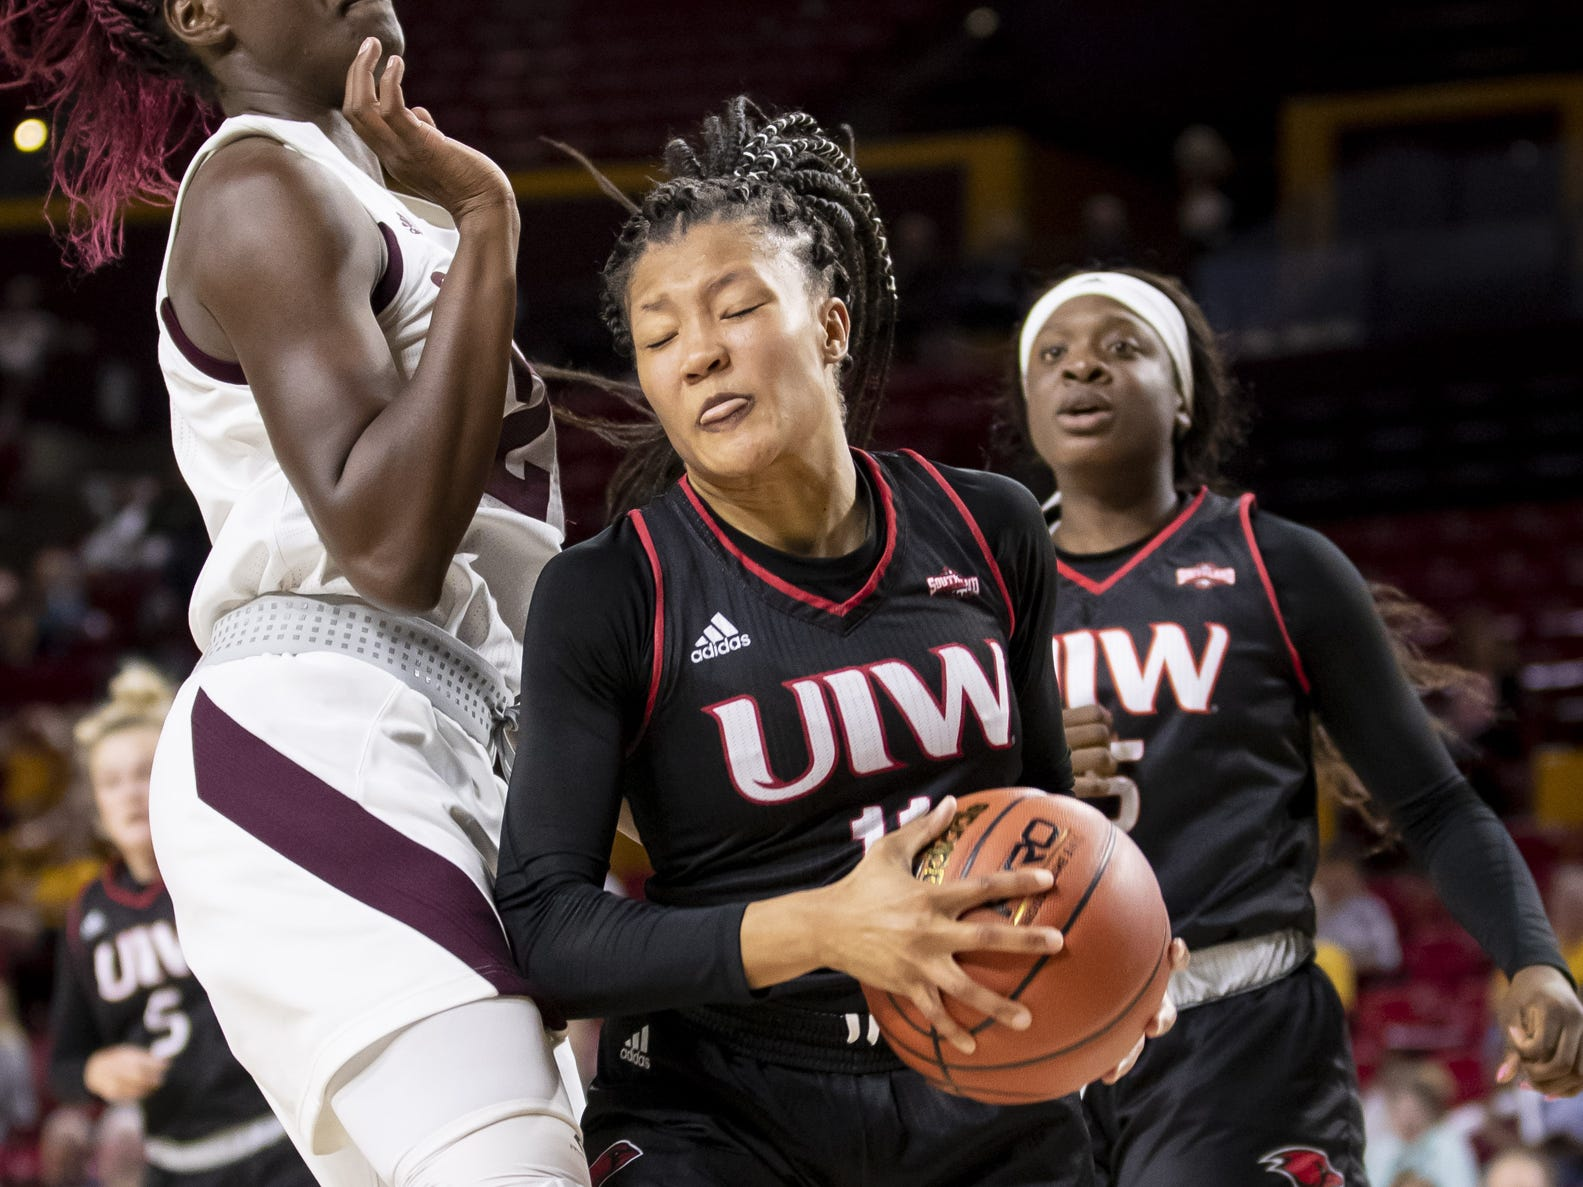 Guard Angelica Wiggins (12) of the Incarnate Word Cardinals rebounds against the Arizona State Sun Devils at Wells Fargo Arena on Tuesday, November 6, 2018 in Tempe, Arizona.